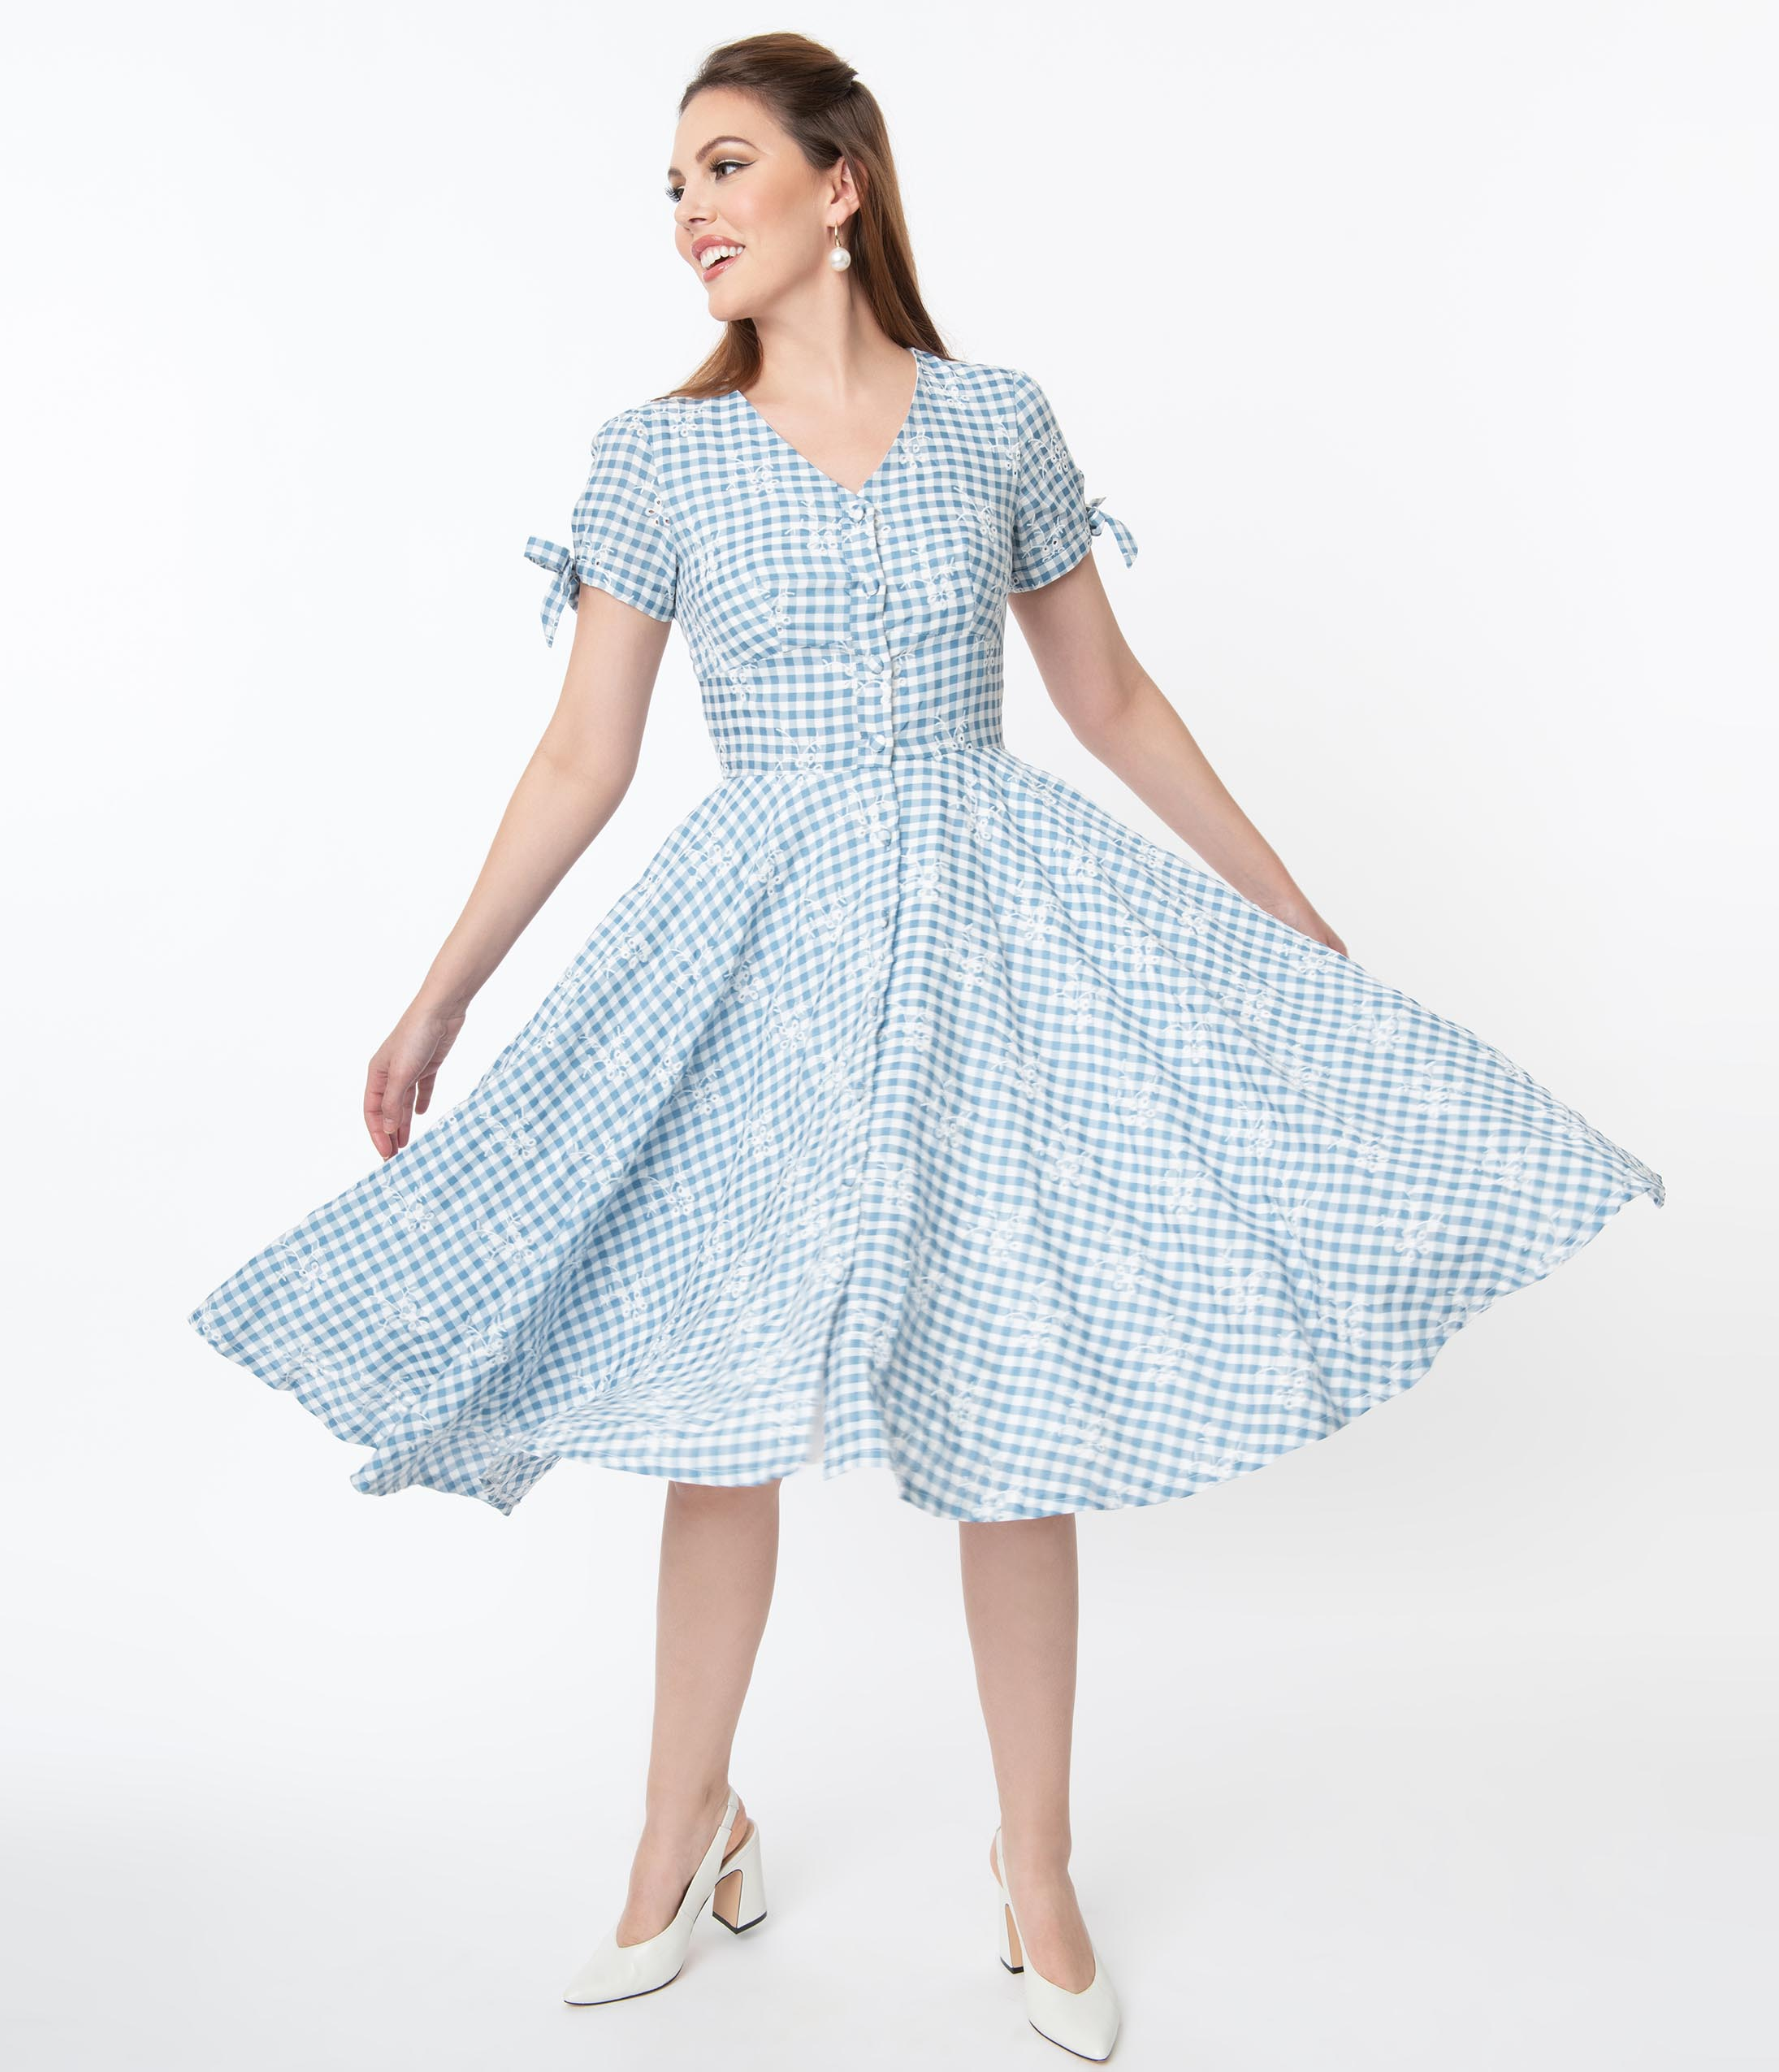 1950s Plus Size Dresses, Swing Dresses Magnolia Place 1950S Blue Gingham Eyelet Eleanor Swing Dress $88.00 AT vintagedancer.com